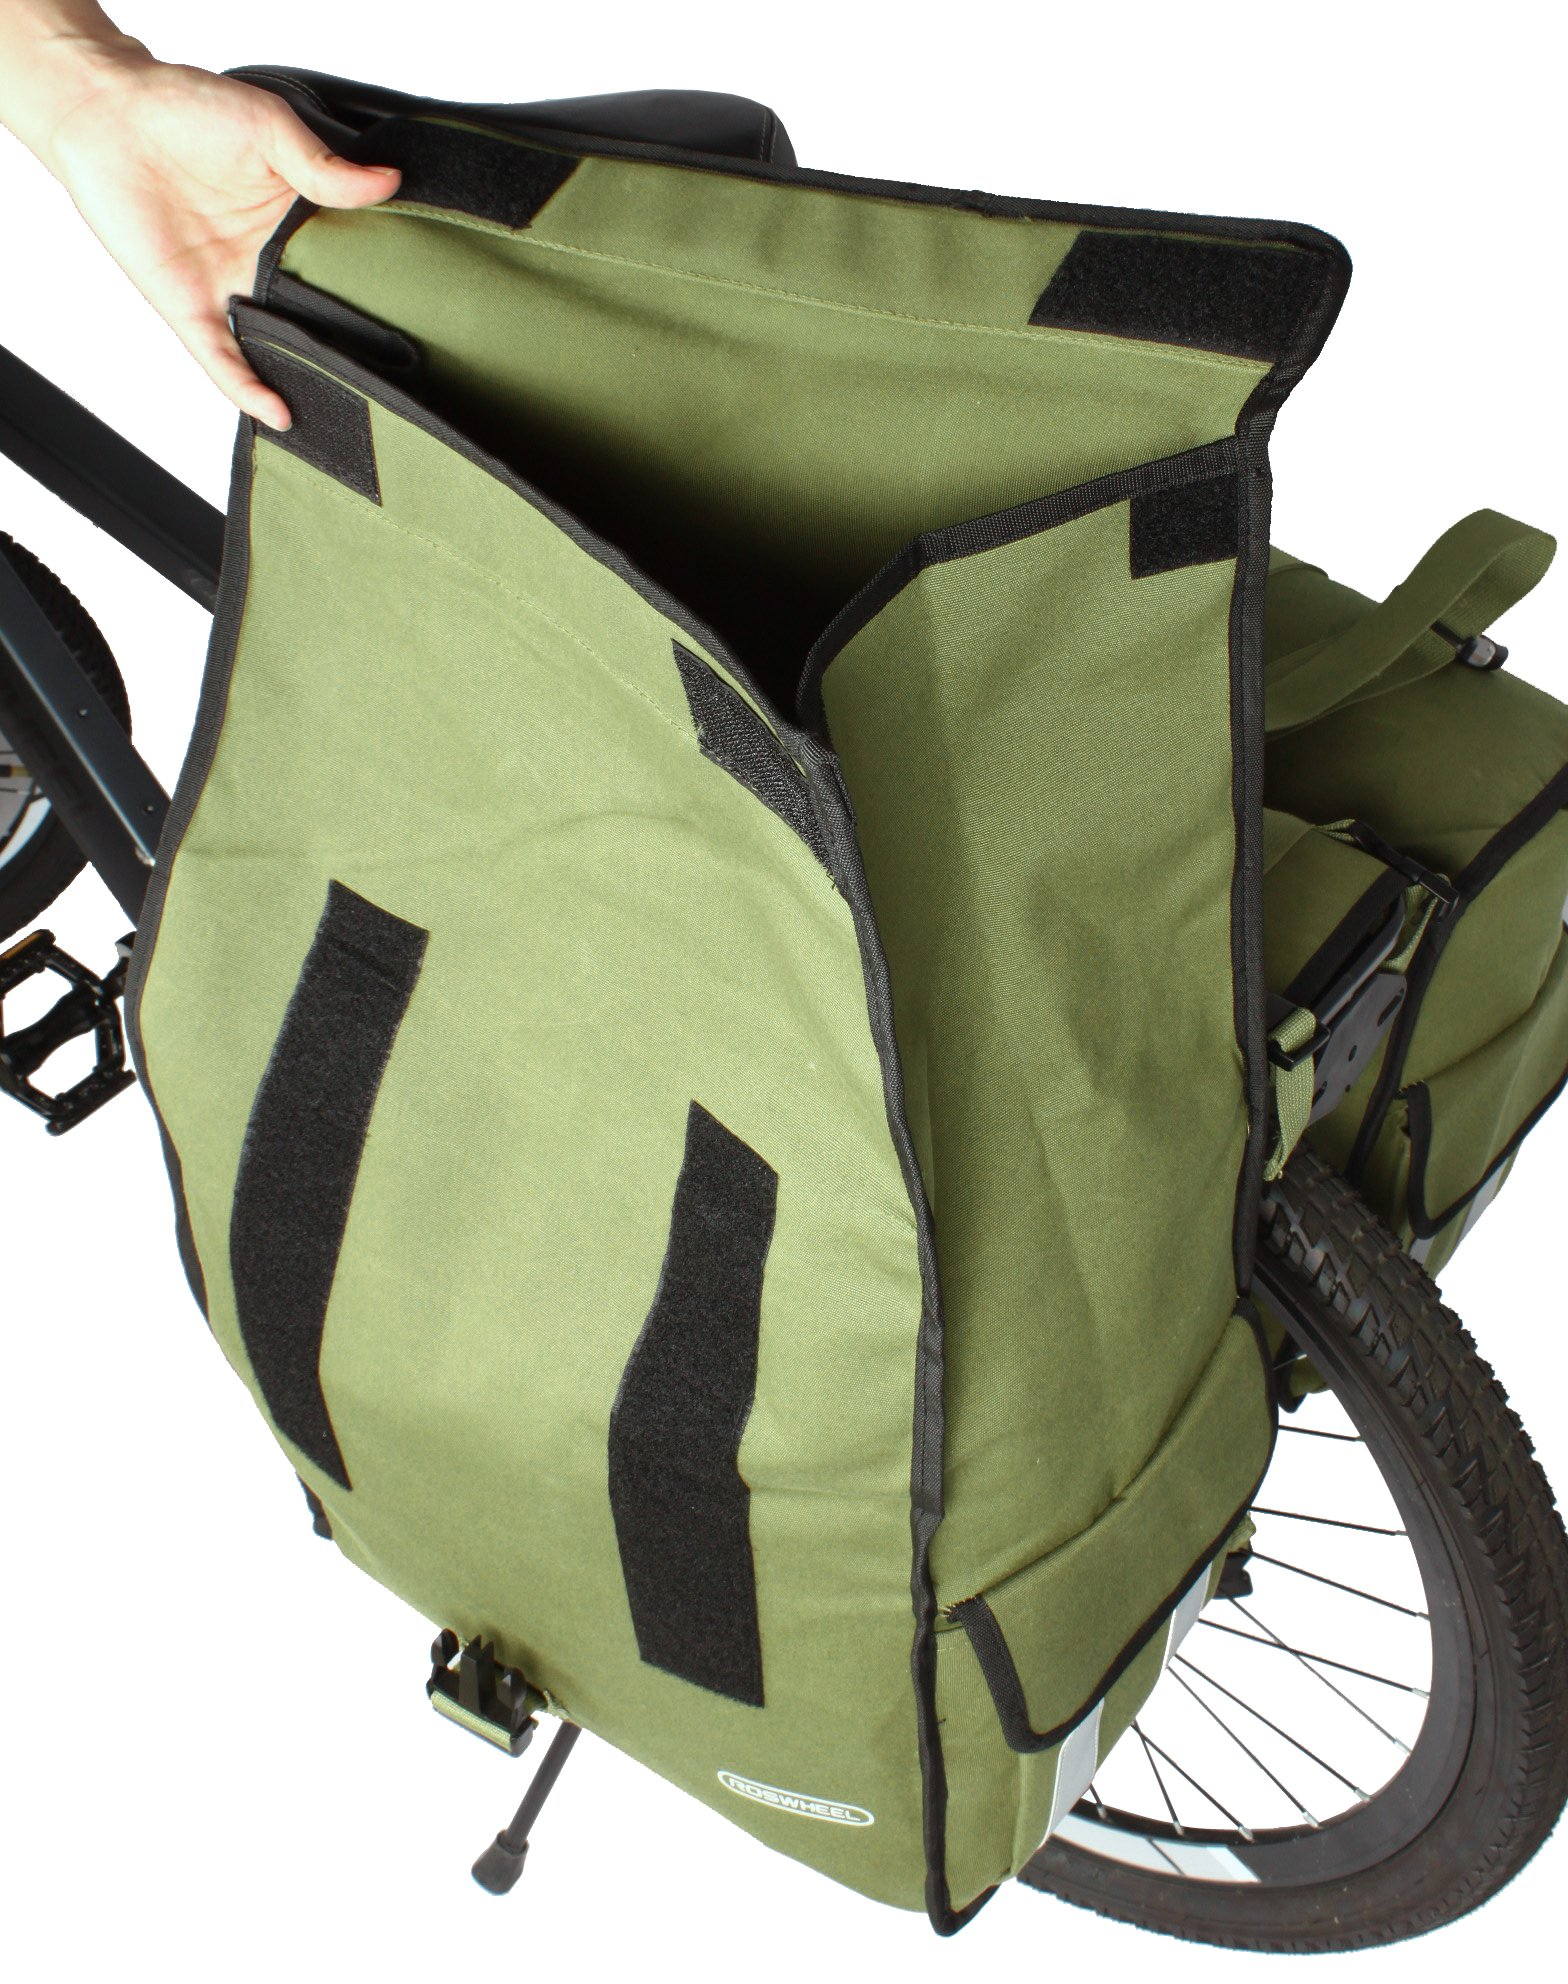 Roswheel 14686 Expedition Series Bike Rear Rack Bag Bicycle Double Panniers Cargo Trunk Bag by Roswheel (Image #5)